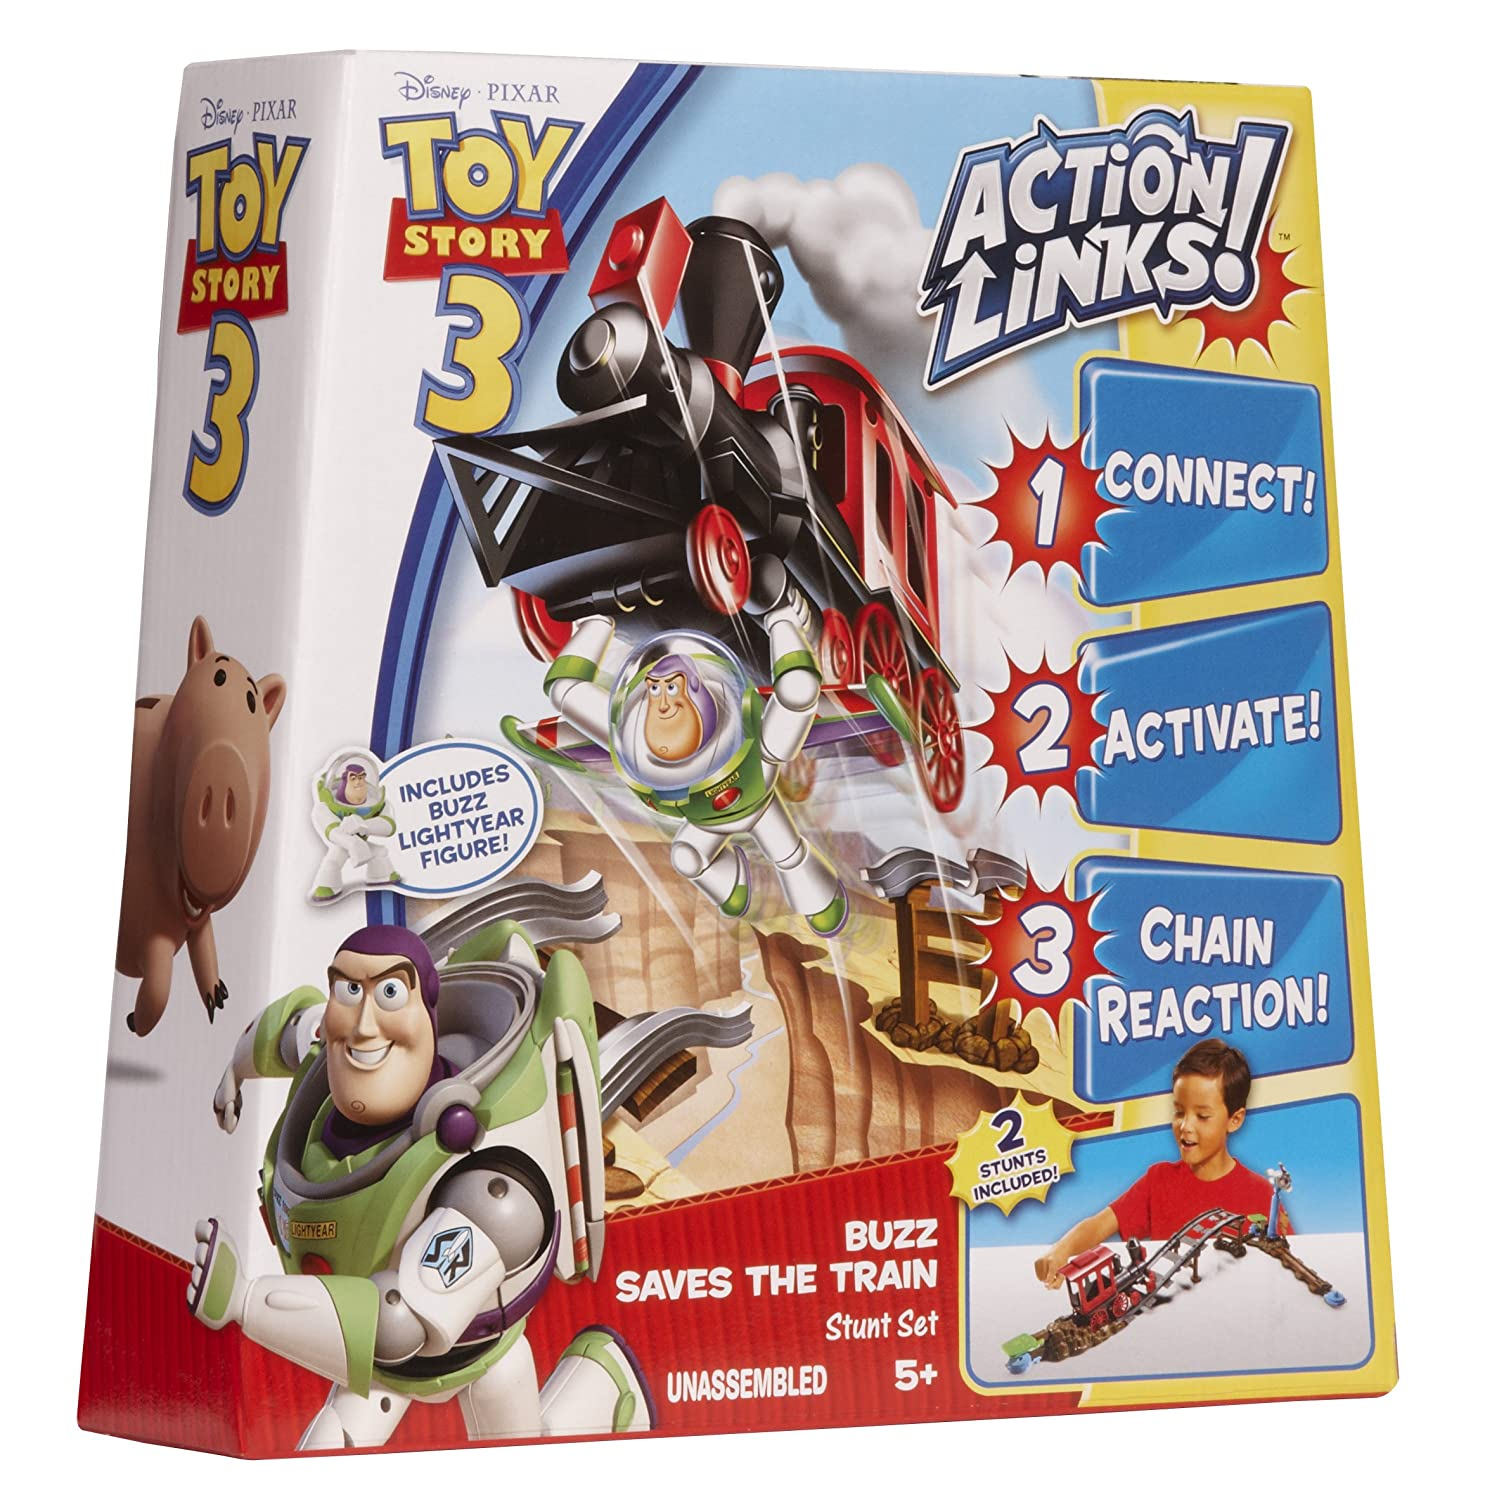 Toy story of terror 1 2 3 buzz lightyear of star command for sale - Amazon Com Toy Story 3 Action Links Buzz Saves The Train Stunt Set Toys Games